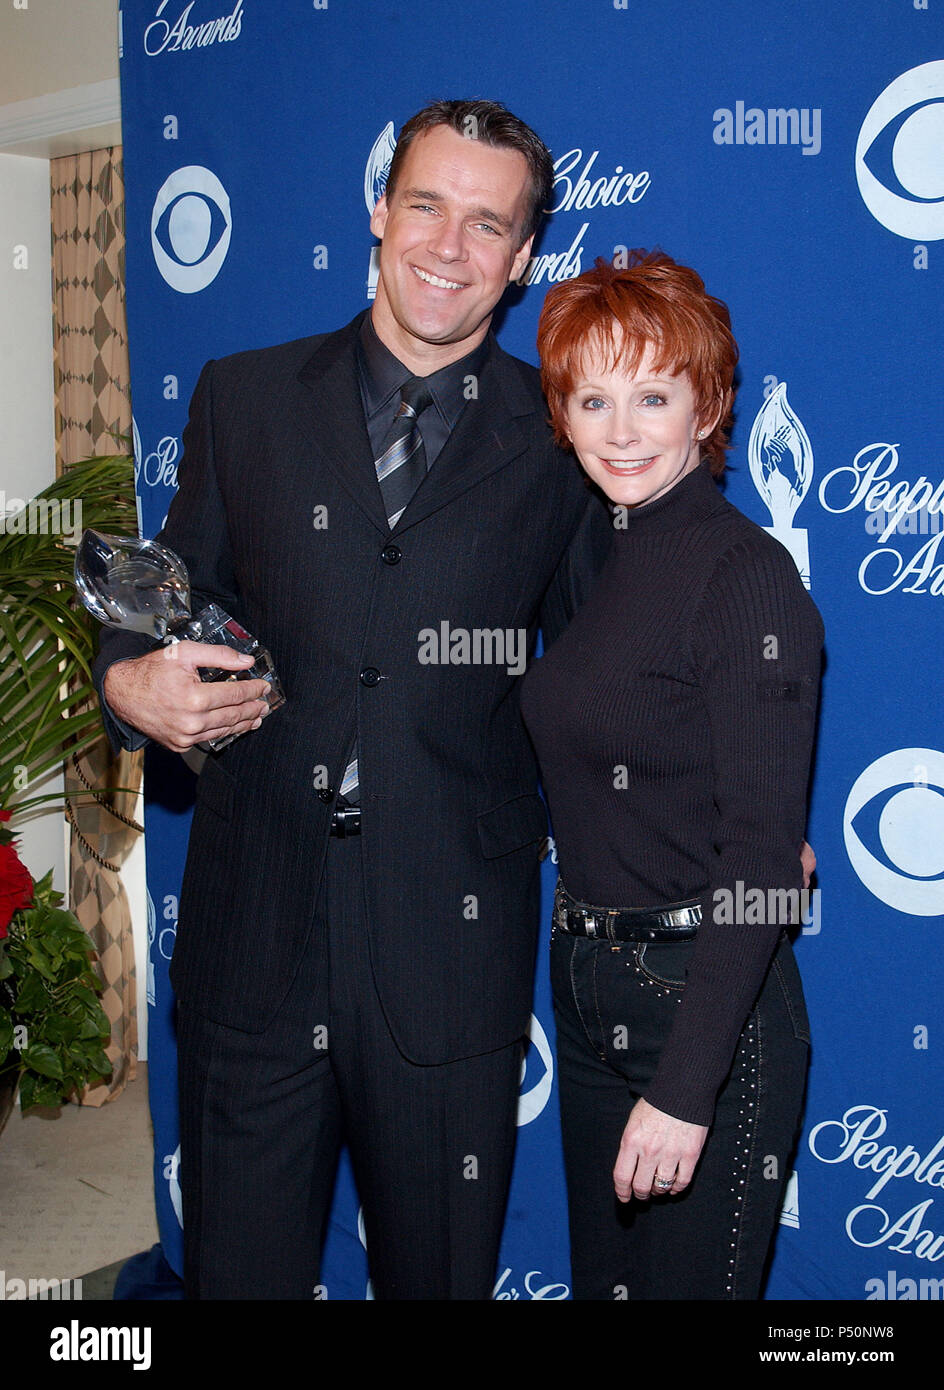 David James Elliott - JAG  -and Reba McEntire were presenting the nominees for the 28th People's  Choice Awards at the Beverly Hilton in Los Angeles. November 27, 2001.           -            ElliottDJ_McEntireReba01.jpgElliottDJ_McEntireReba01  Event in Hollywood Life - California, Red Carpet Event, USA, Film Industry, Celebrities, Photography, Bestof, Arts Culture and Entertainment, Topix Celebrities fashion, Best of, Hollywood Life, Event in Hollywood Life - California,  backstage trophy, Awards show, movie celebrities, TV celebrities, Music celebrities, Topix, Bestof, Arts Culture and Ente - Stock Image